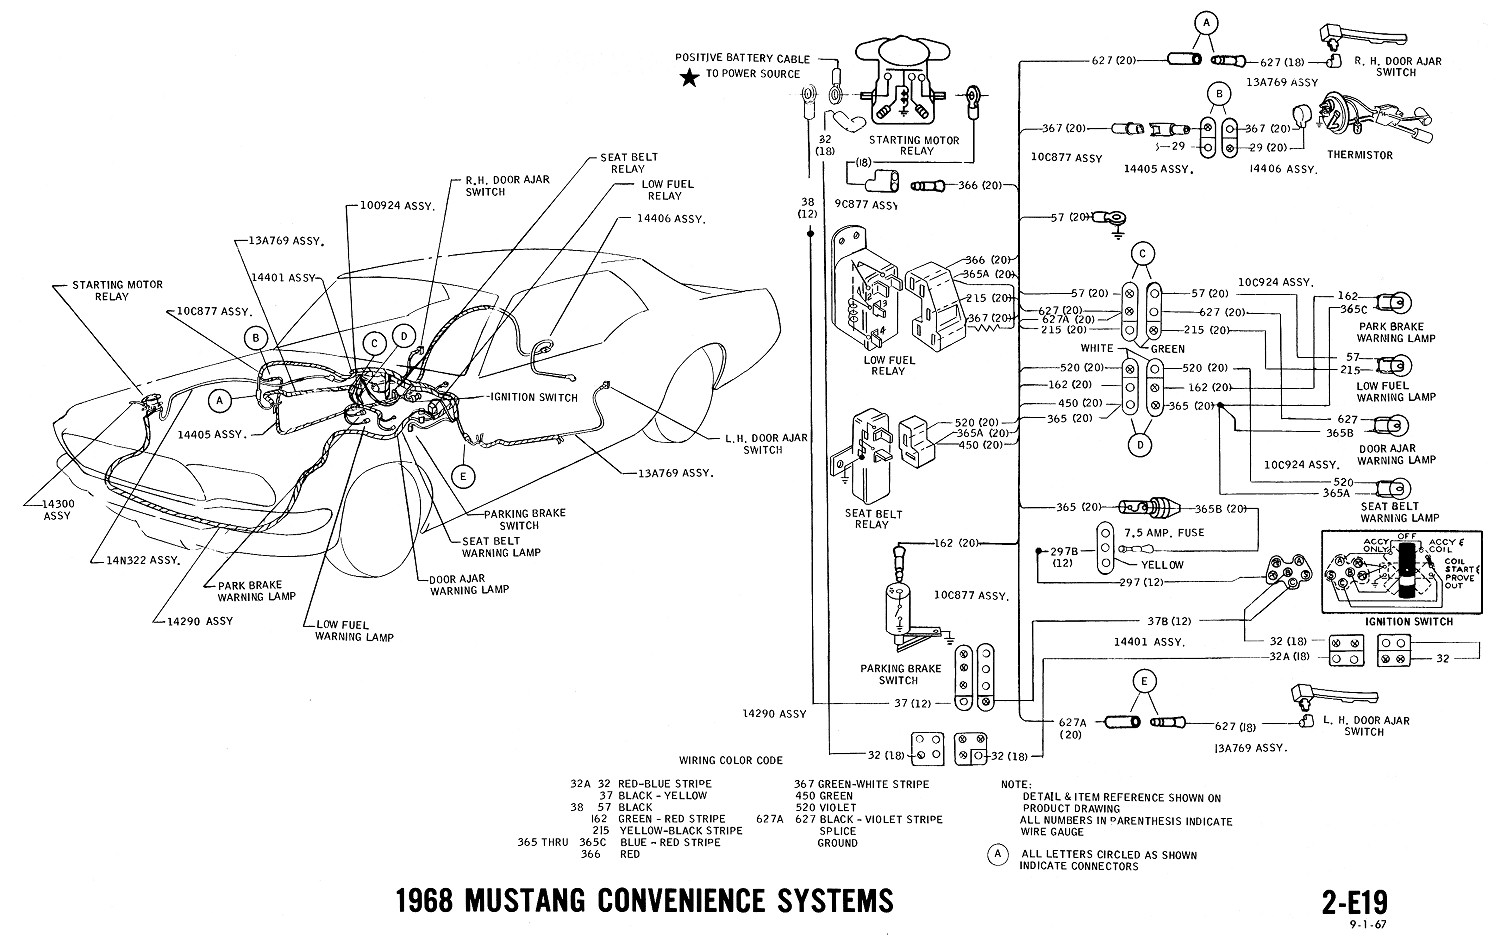 E19 1968 mustang wiring diagrams evolving software 1967 Mustang Wiring Schematic at crackthecode.co